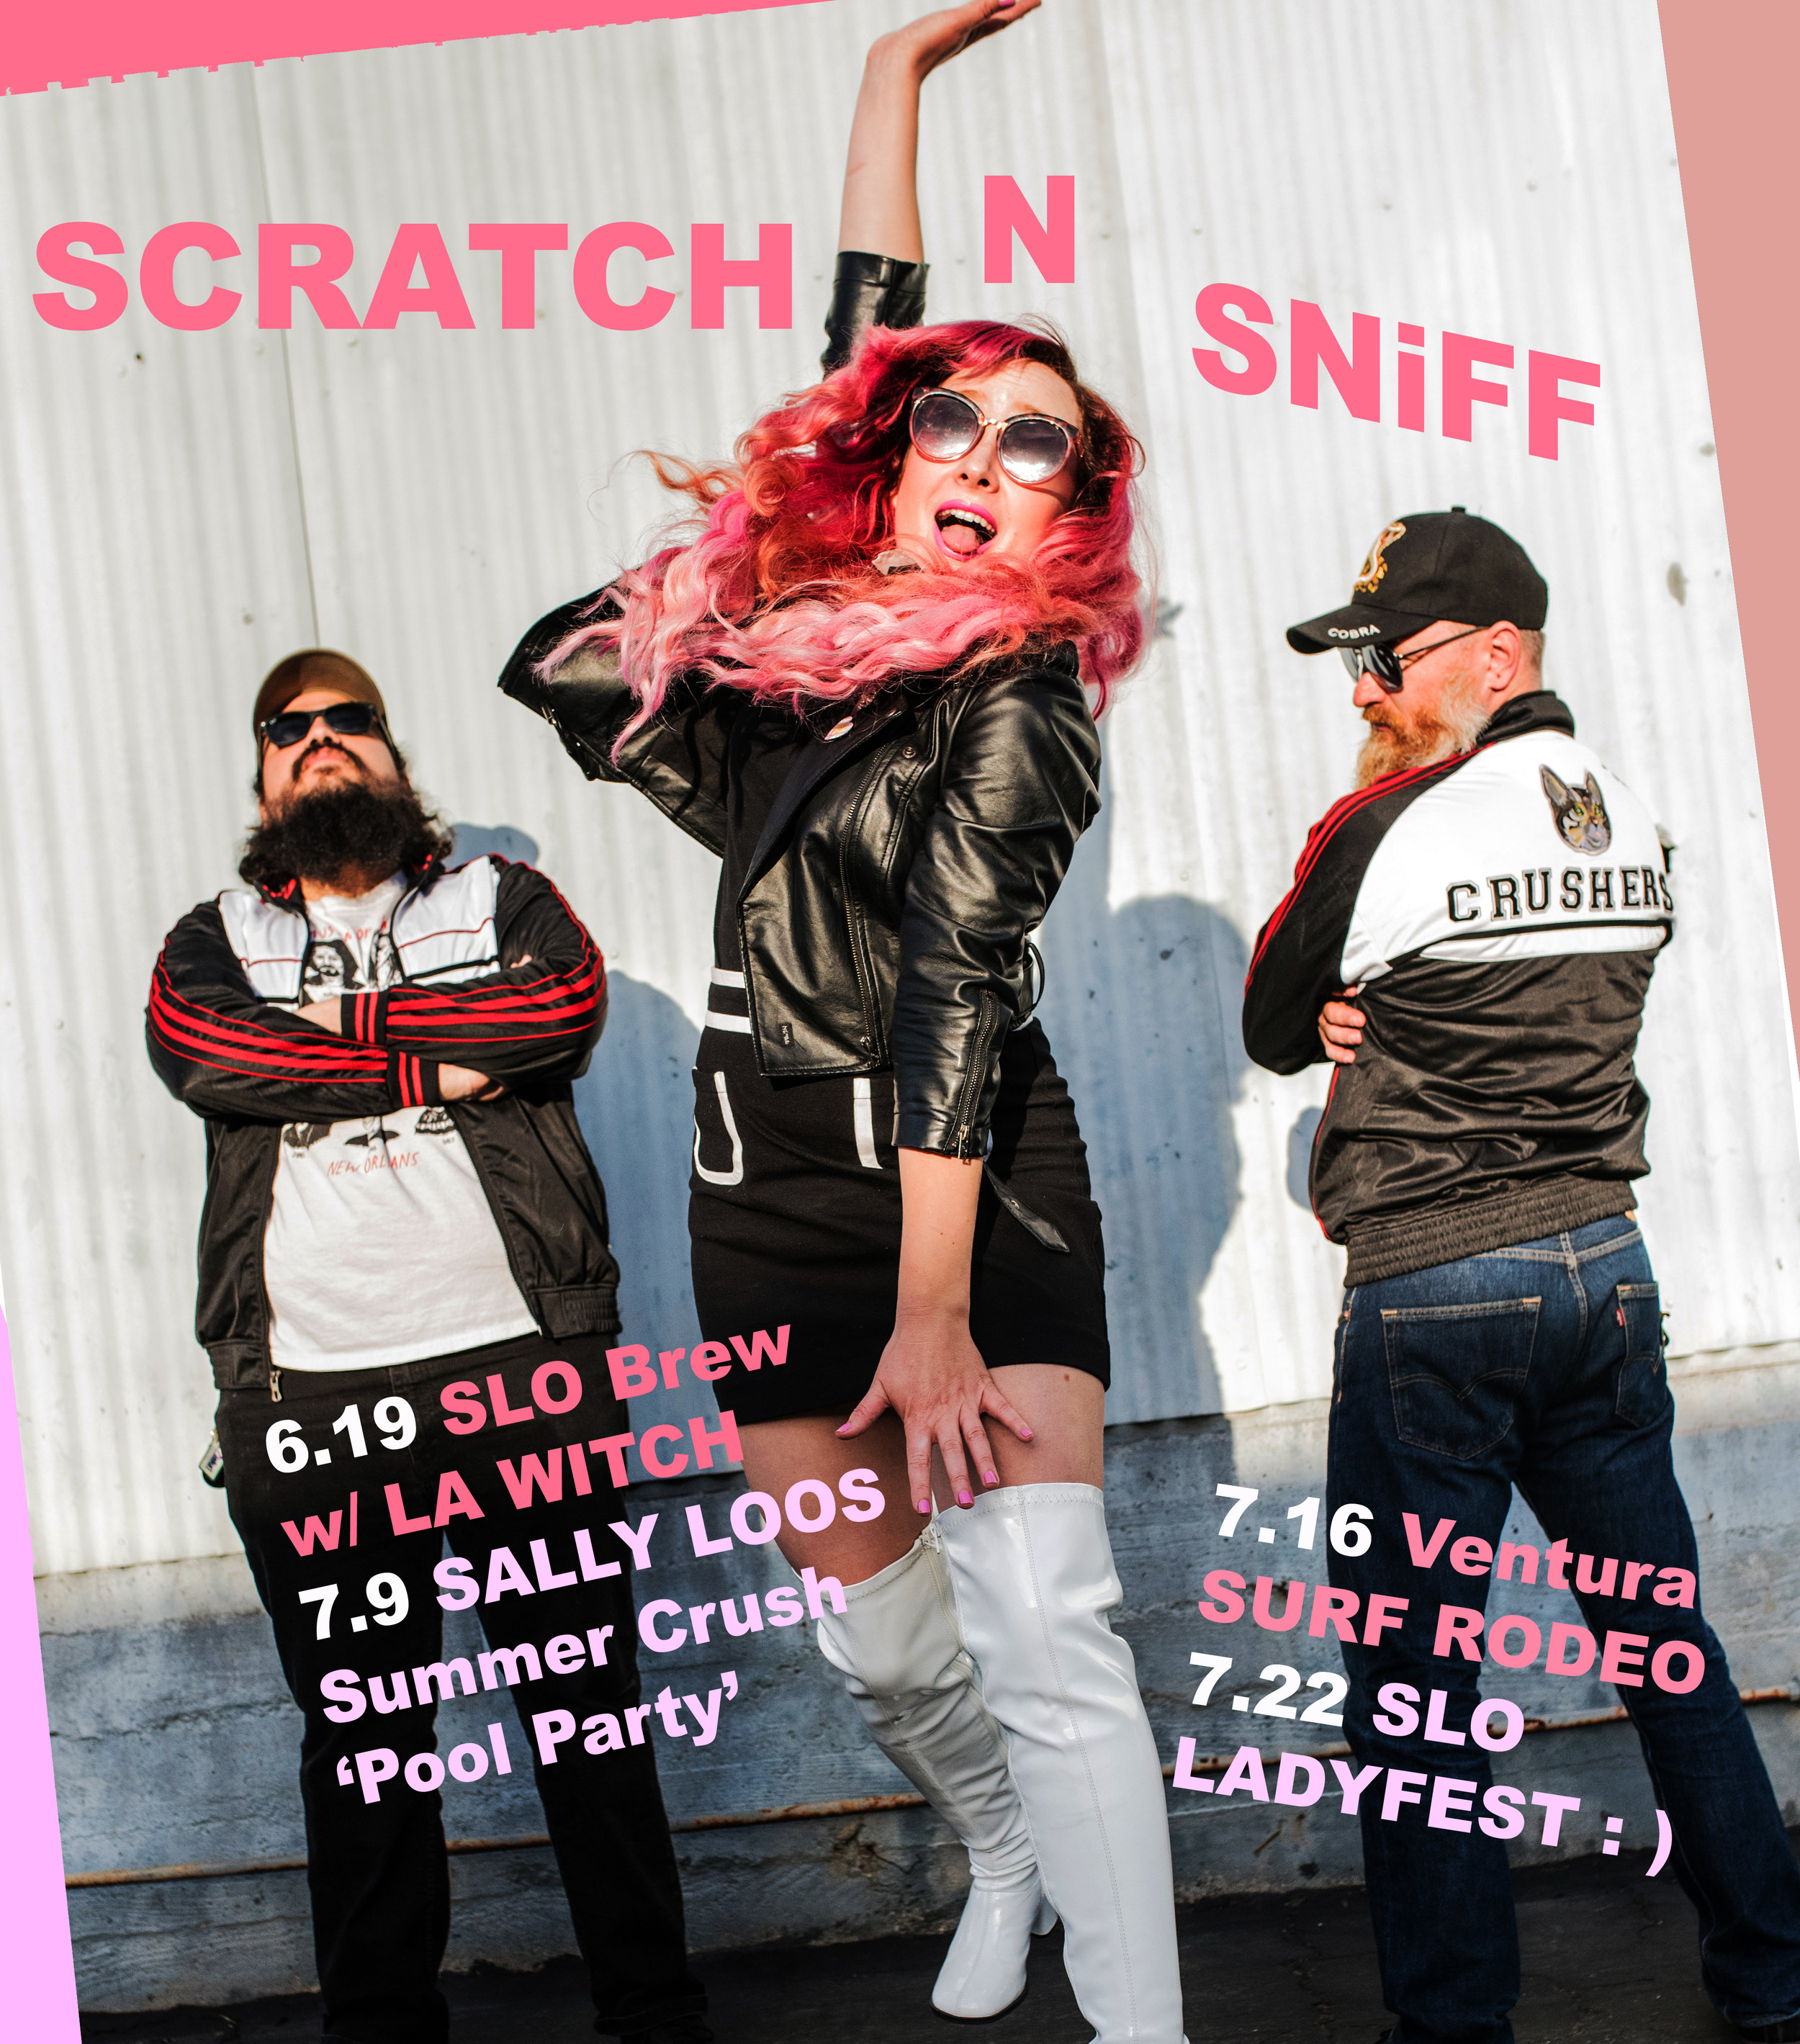 Scratch N Sniff Summer Dates Announced!   SLO Brew with LA WITCH // 21+ // Free //  Event Page   Sally Loo's Summer Crush Pool Party // All Ages // Free //  See pics from last year  //  Save the Date   Ventura Surf Rodeo // All Ages //  Tickets  //  See Pics from last year   SLO Lady Fest // All Ages // Details TBA